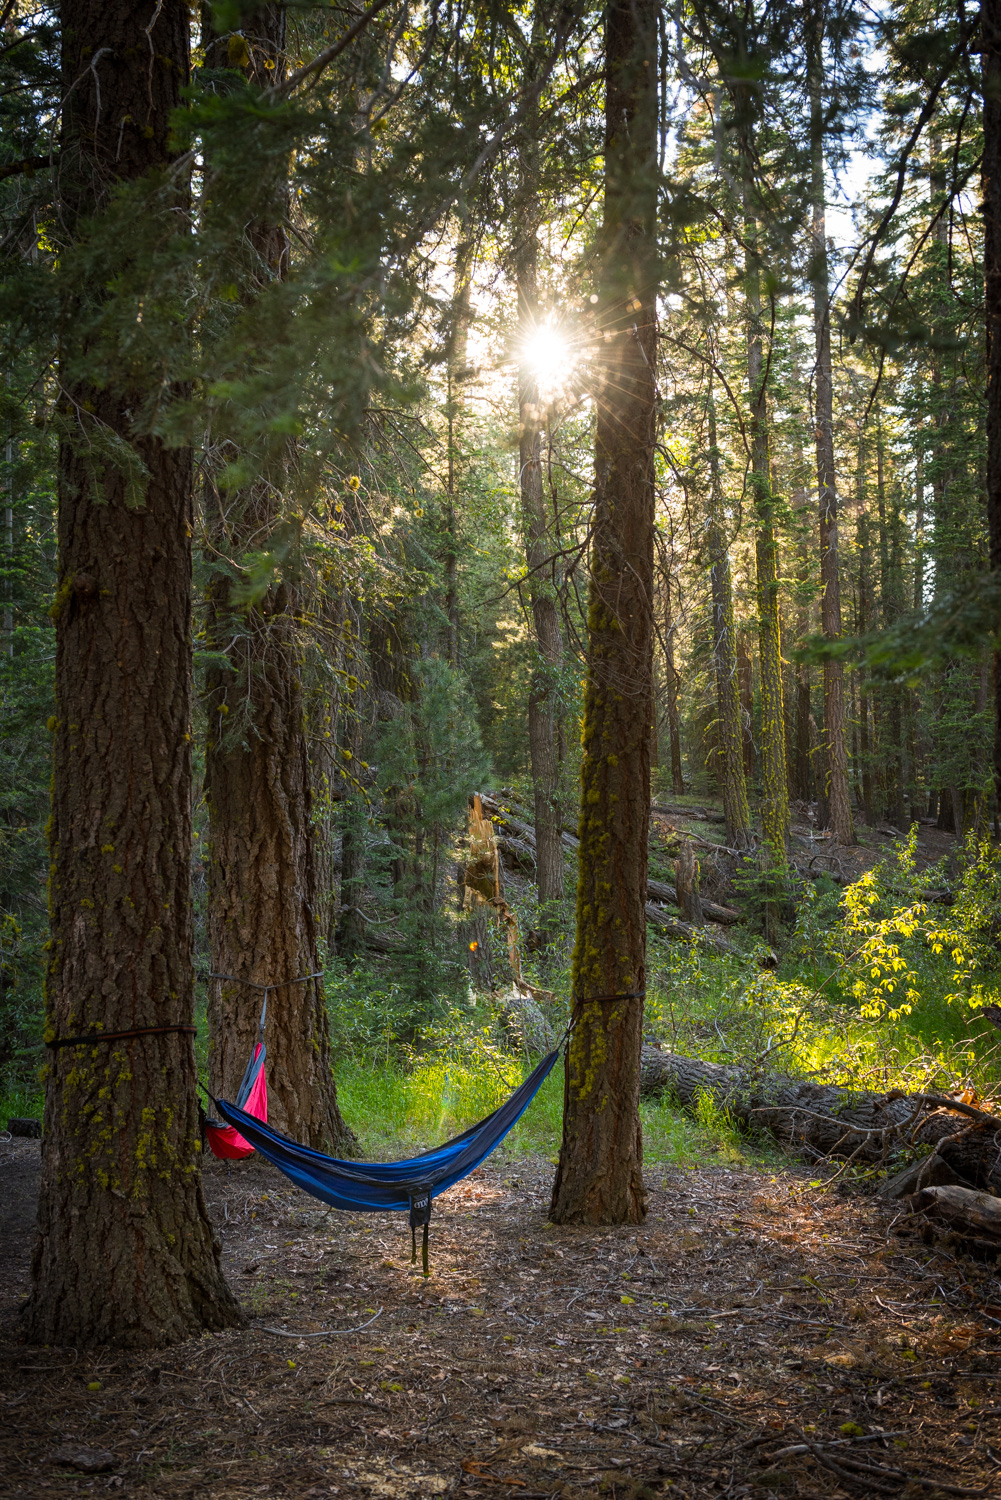 The perfect hammock spot